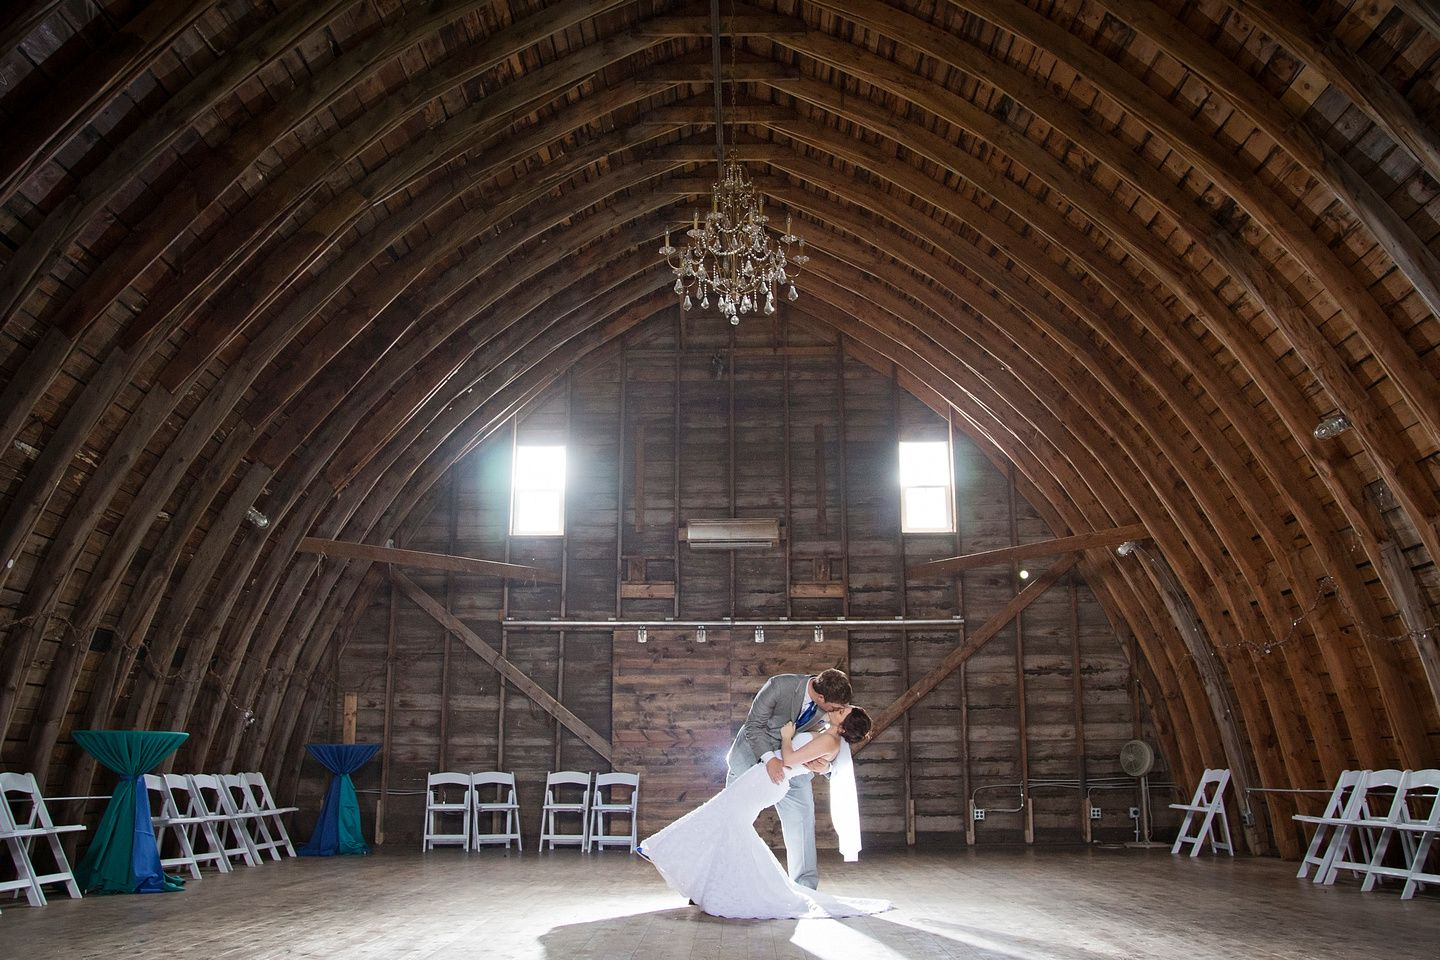 Brent Charissa Affordable Wedding Photographer Twin Cities Wedding Wedding Coverage